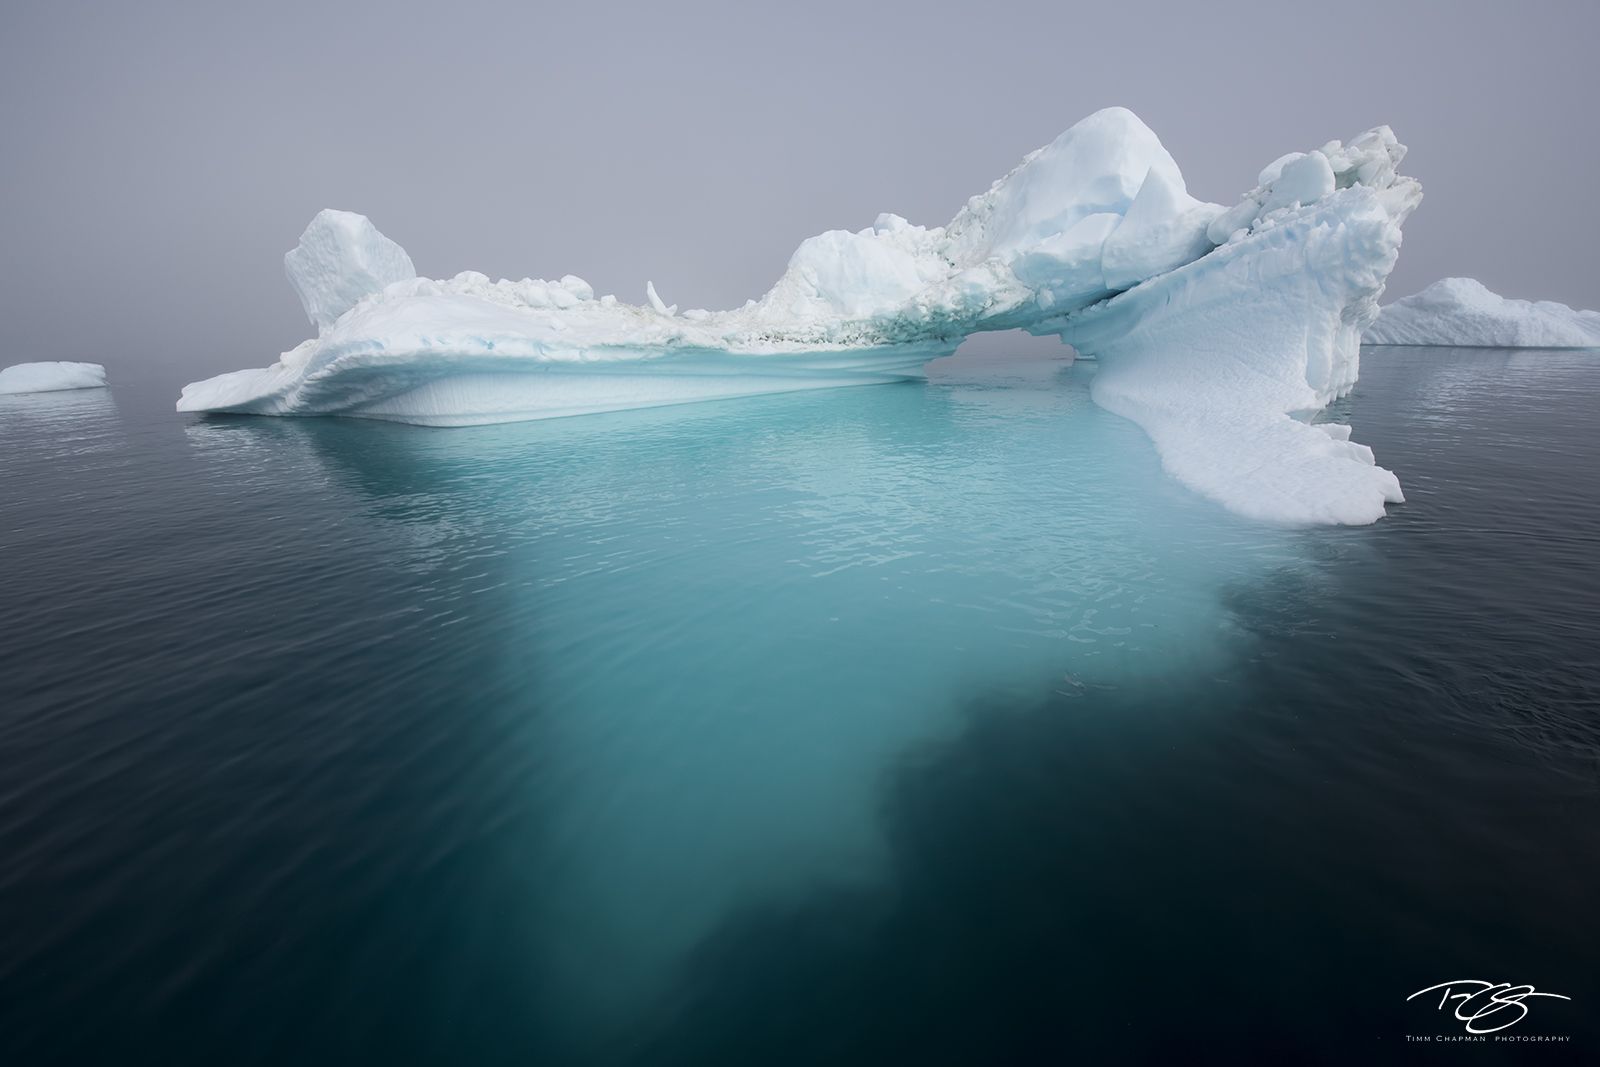 A massive iceberg emerges from thick fog cloaking Greenland's Disko Bay